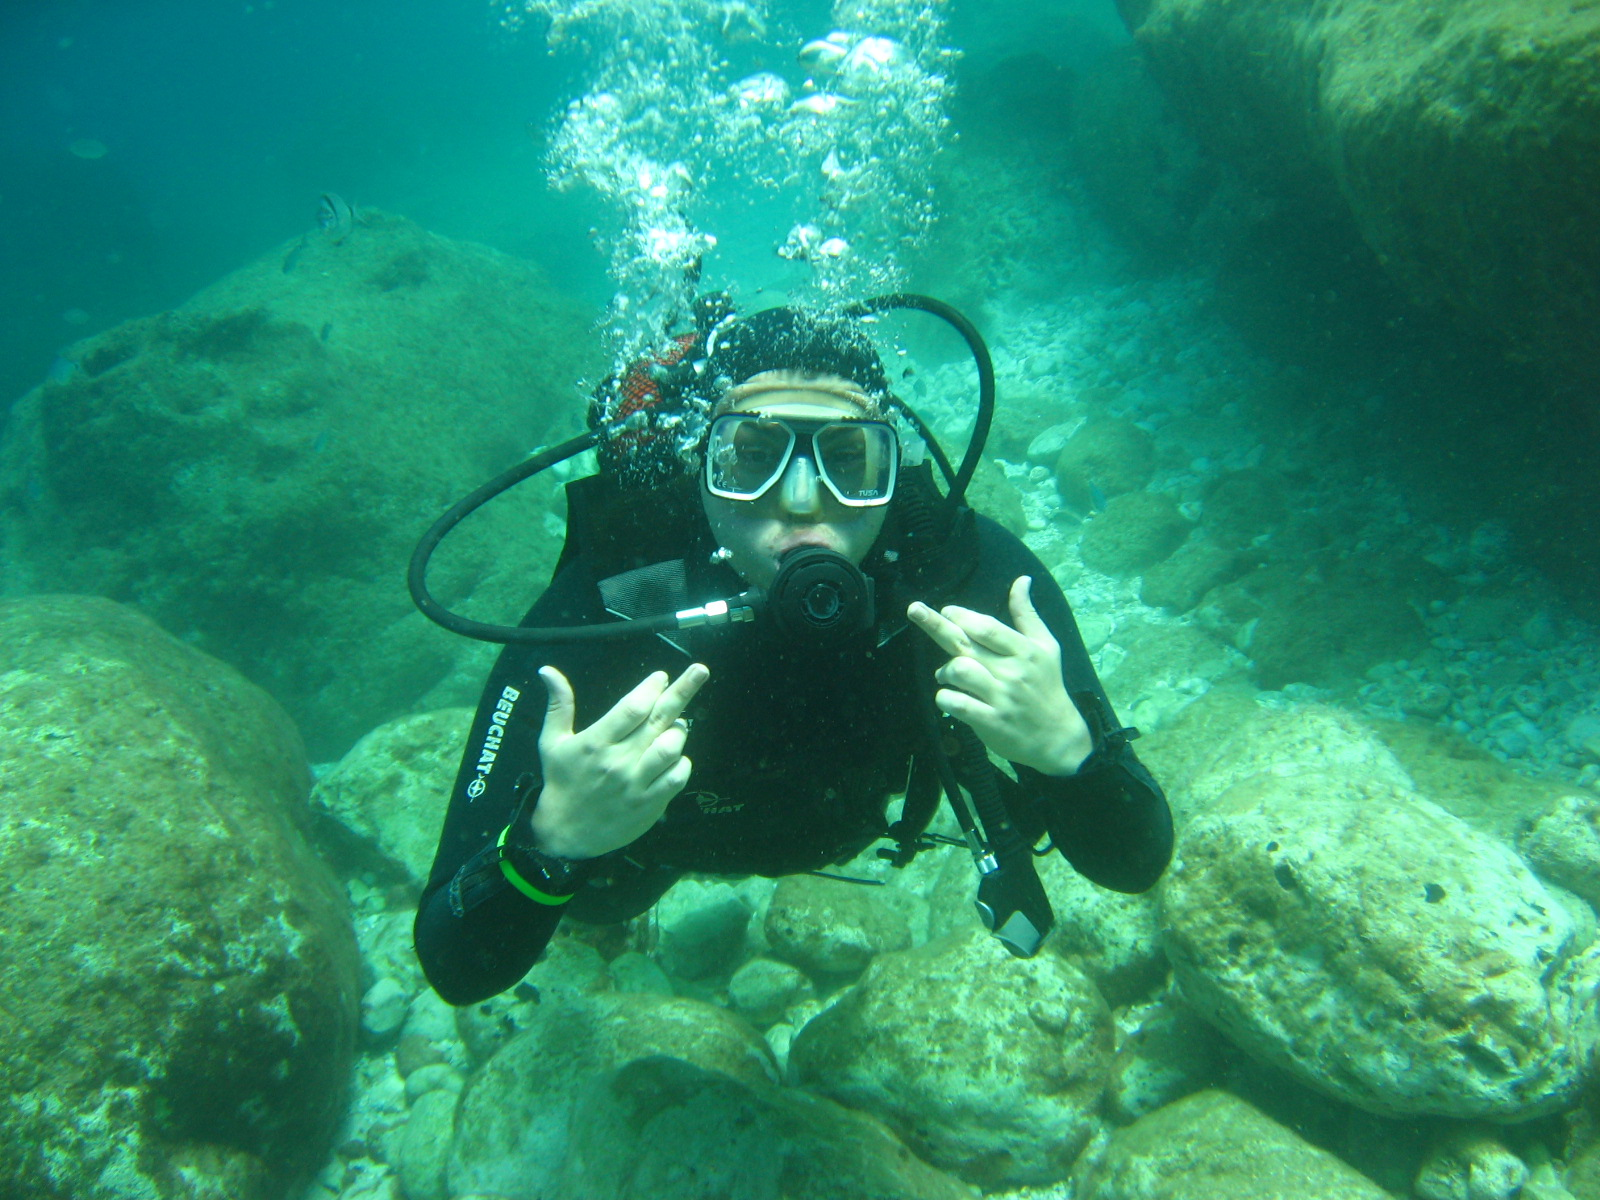 Scuba diving tour pictures